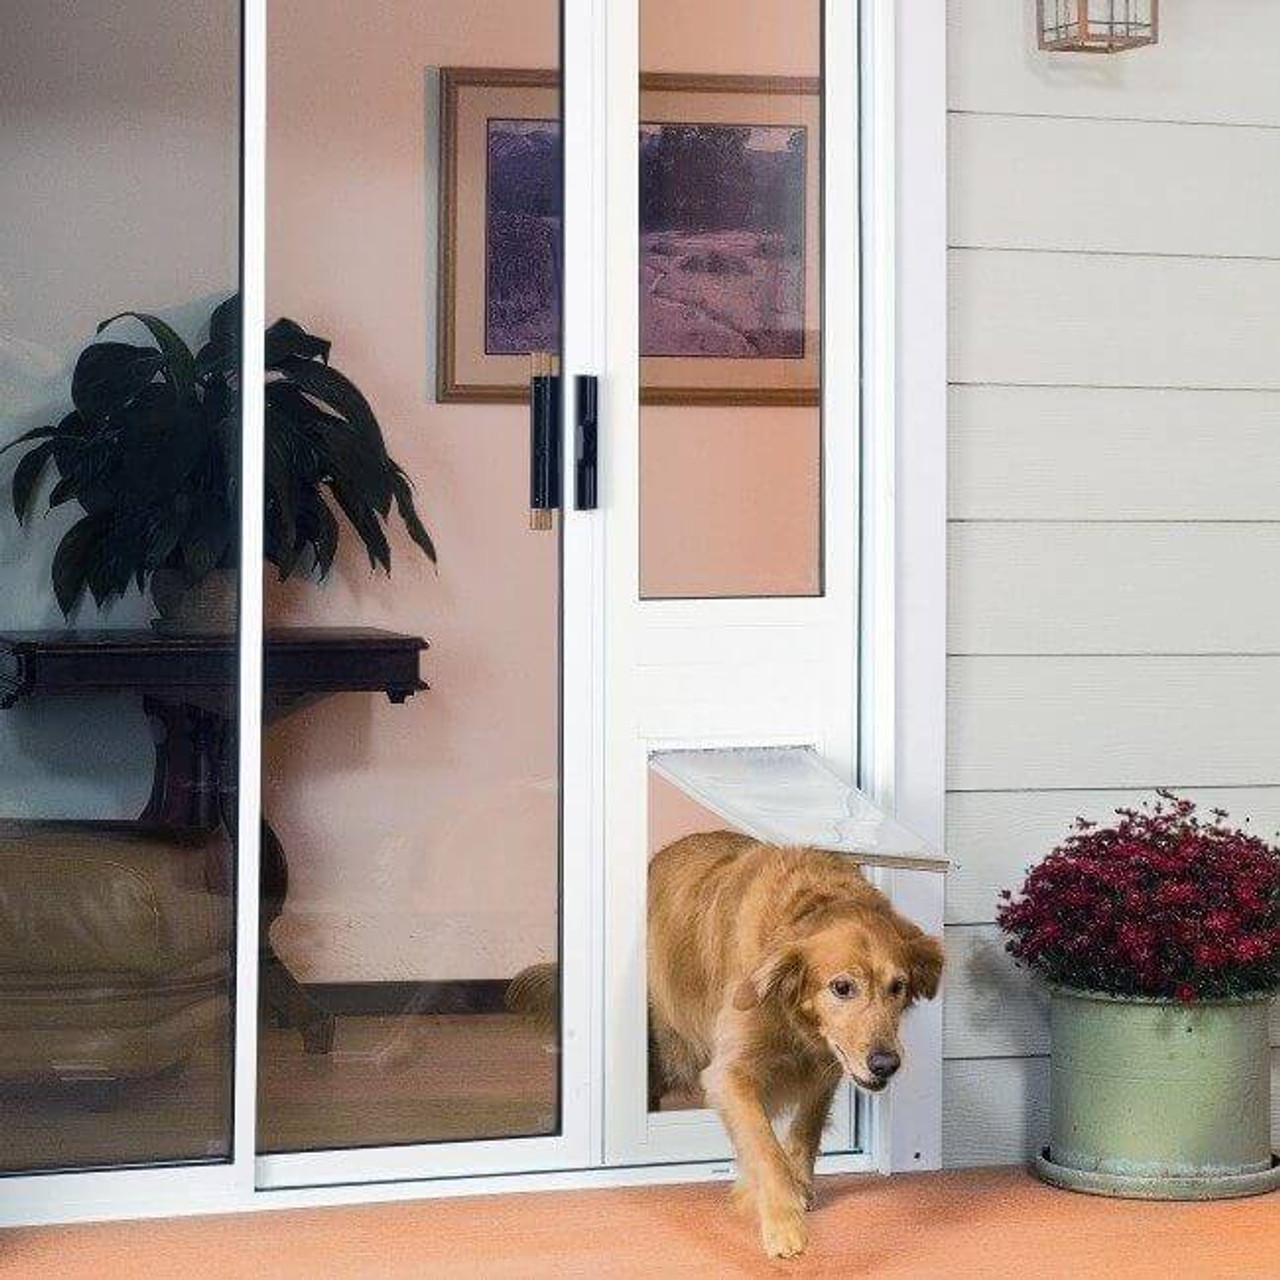 Thermo Panel 3e Endura Flap pet door has an adjustable rise so the pet door can be lowered or raised to suit the dog who uses it